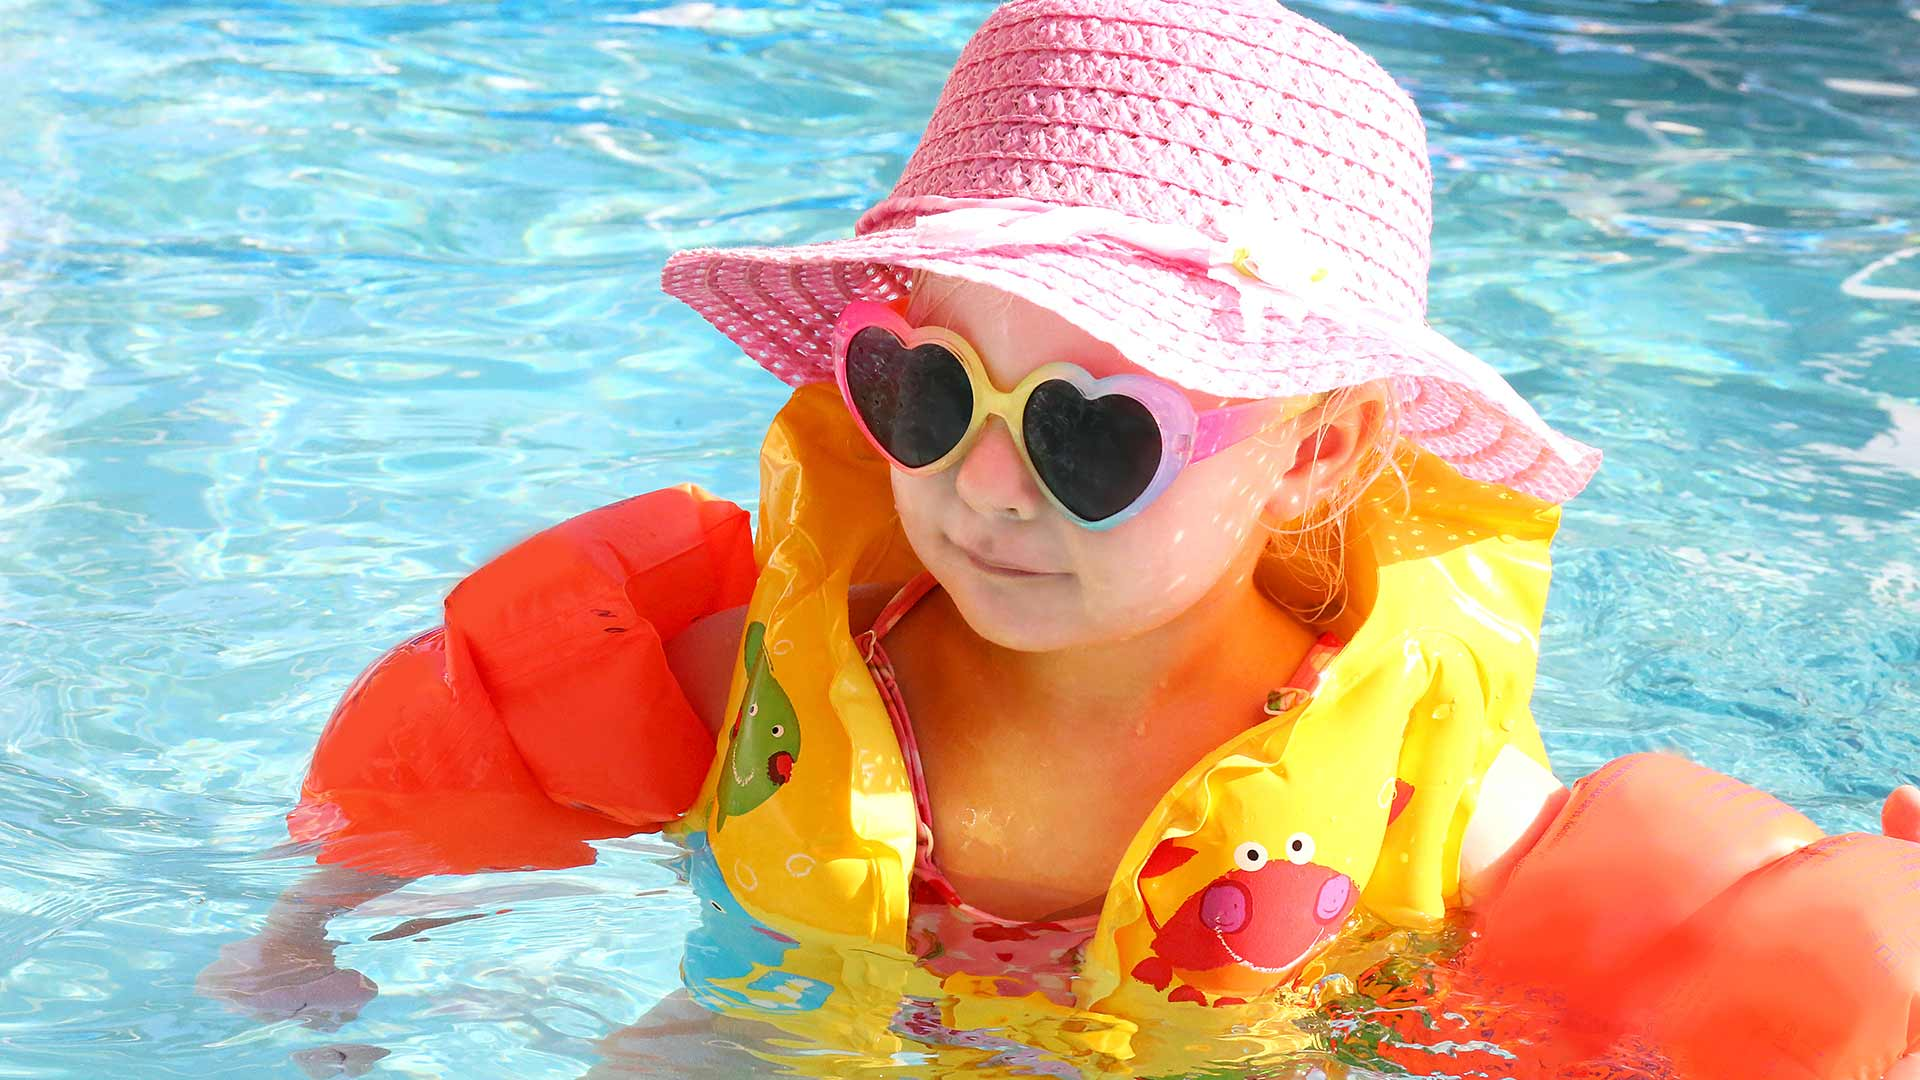 baby in pool with floaties and sun glasses